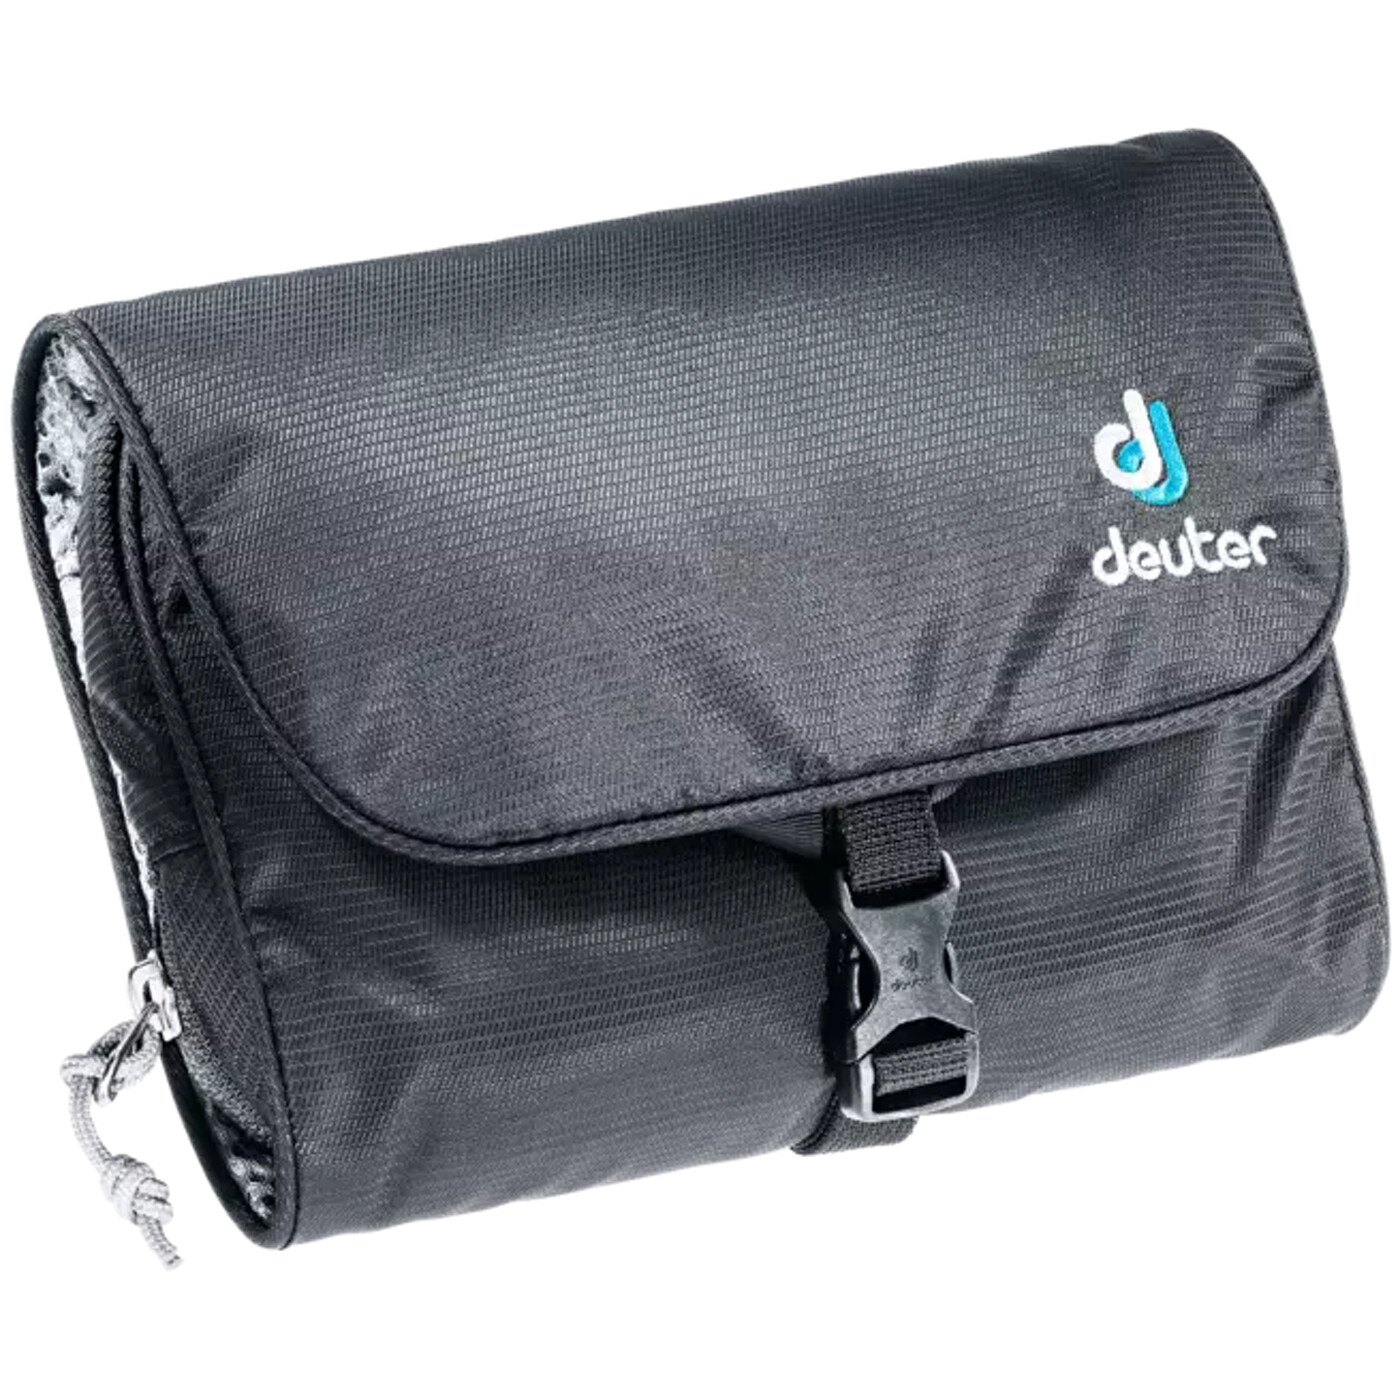 DEUTER Kulturbeutel Wash Bag I